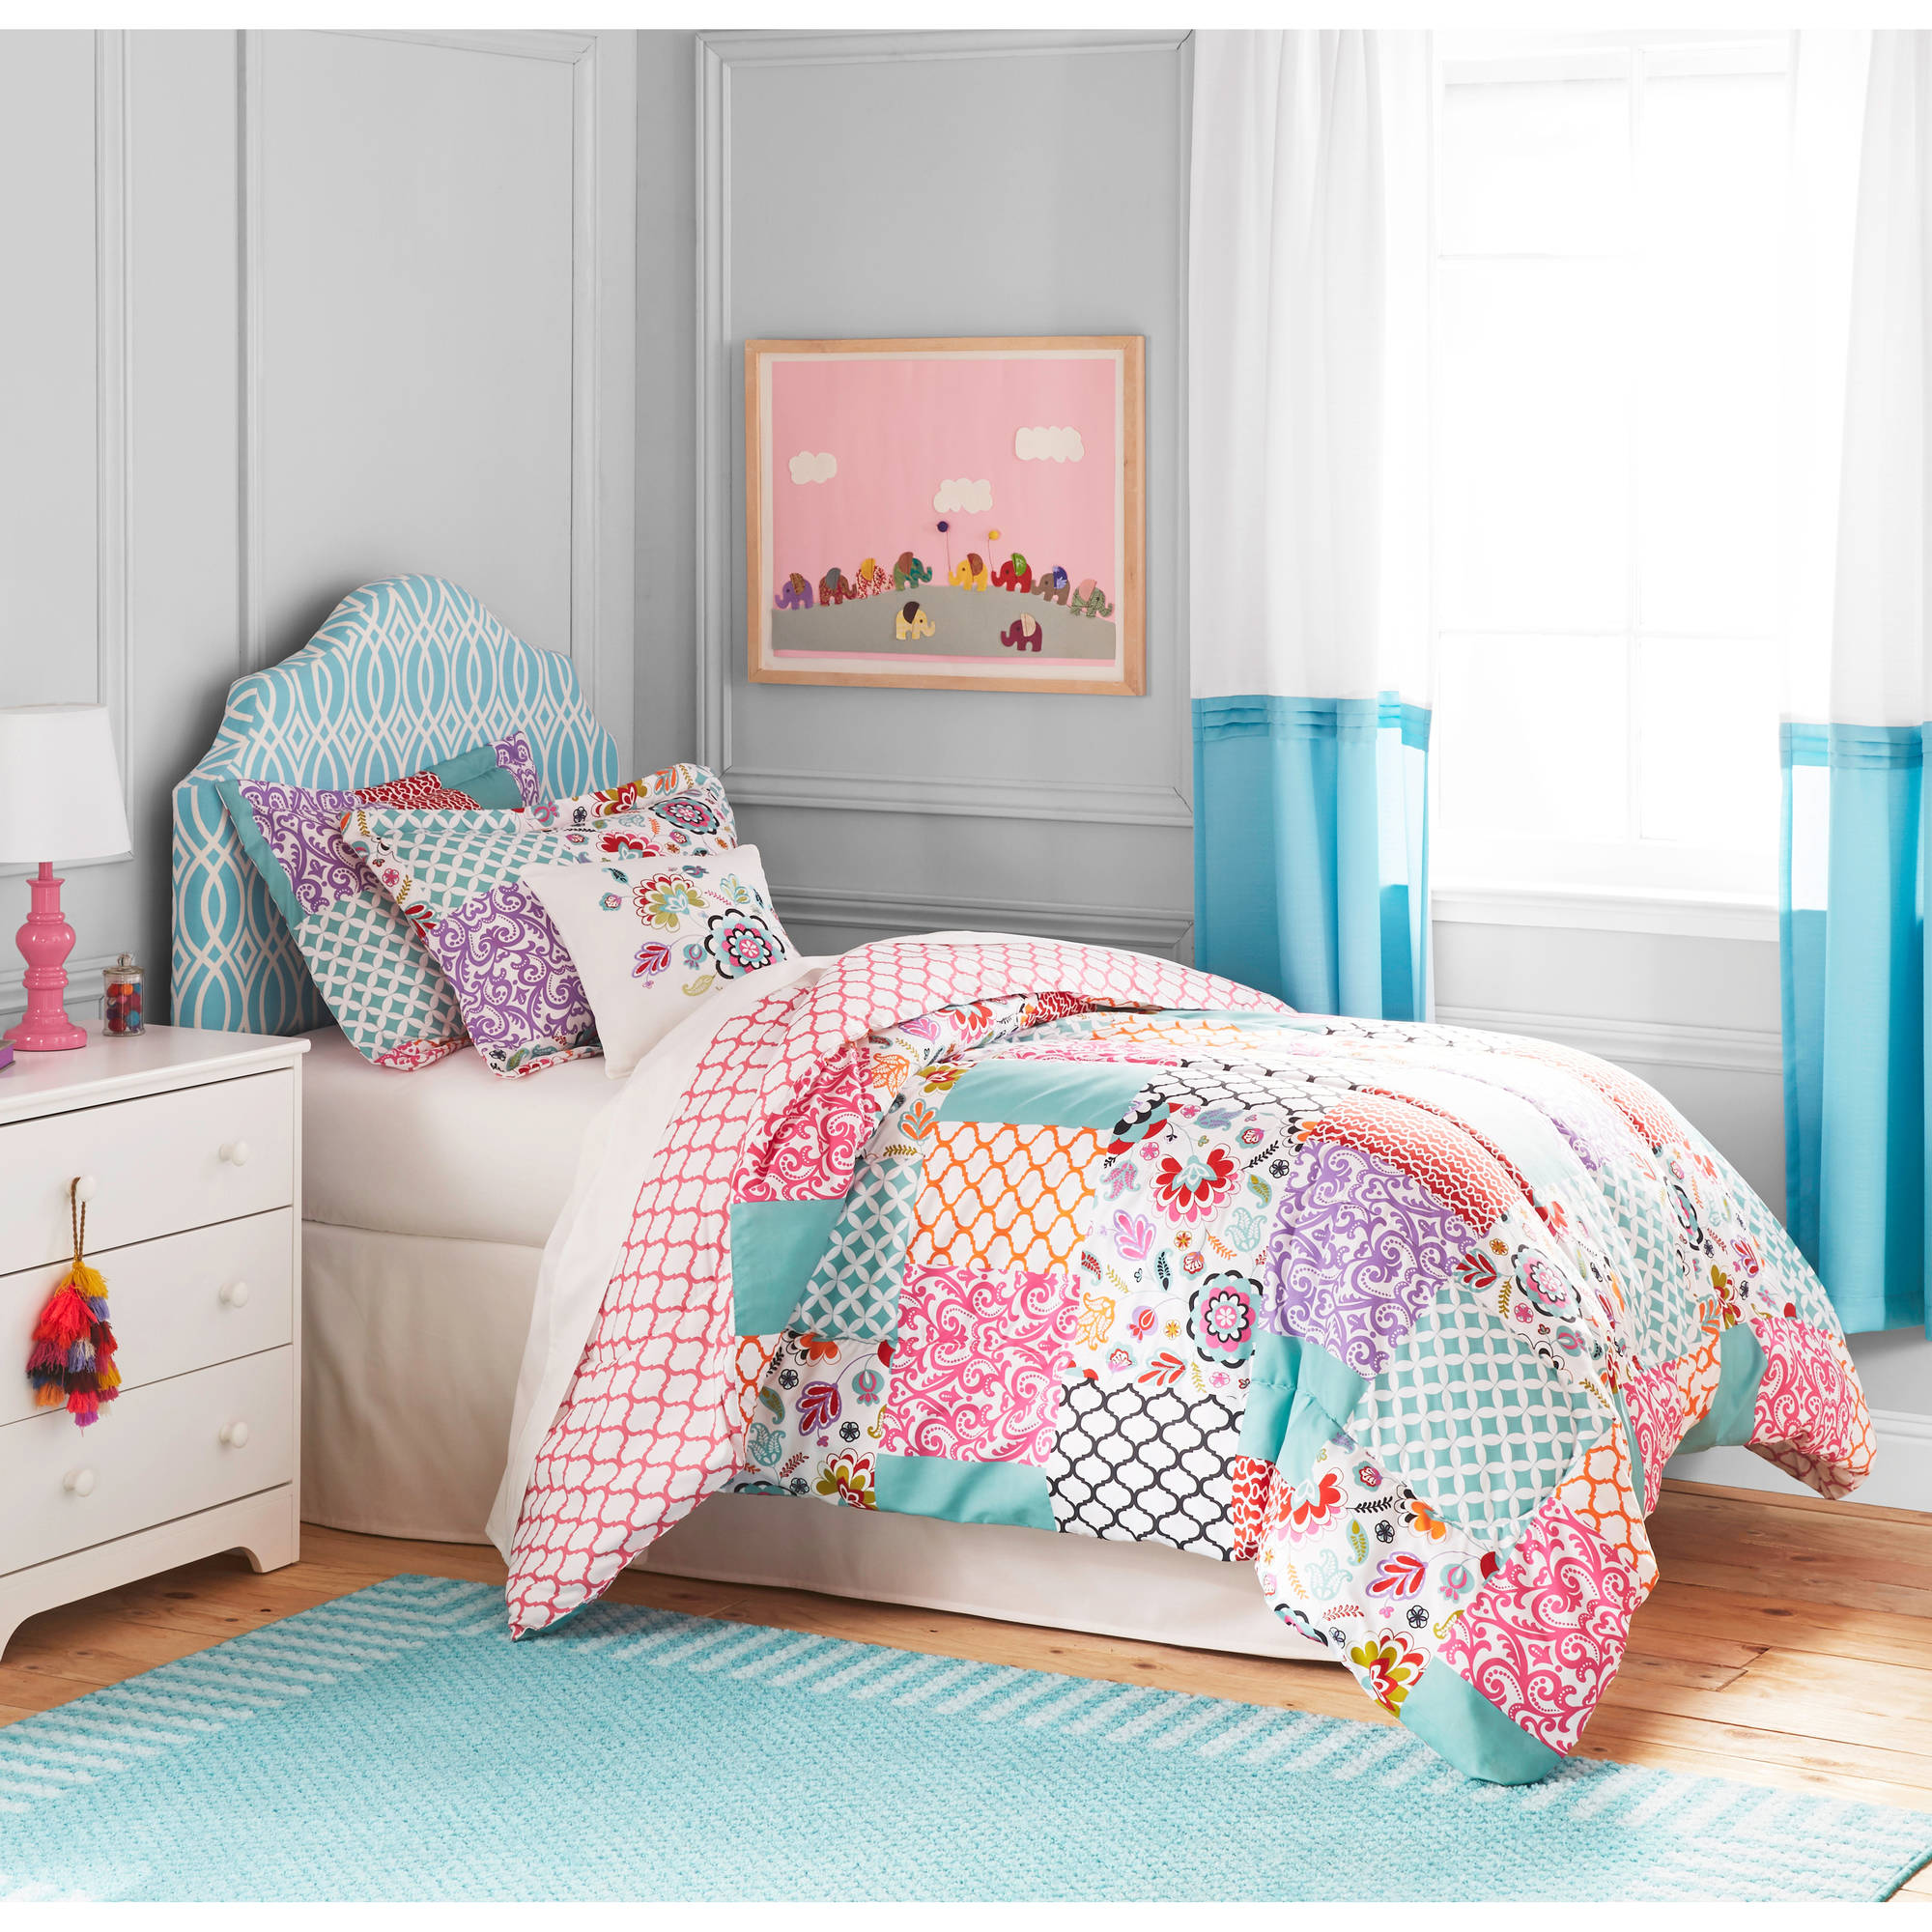 Amazon.com: Fun Girls Teen Comforter Bedding Set Bright ... |Teen Bedding Sets For Fun